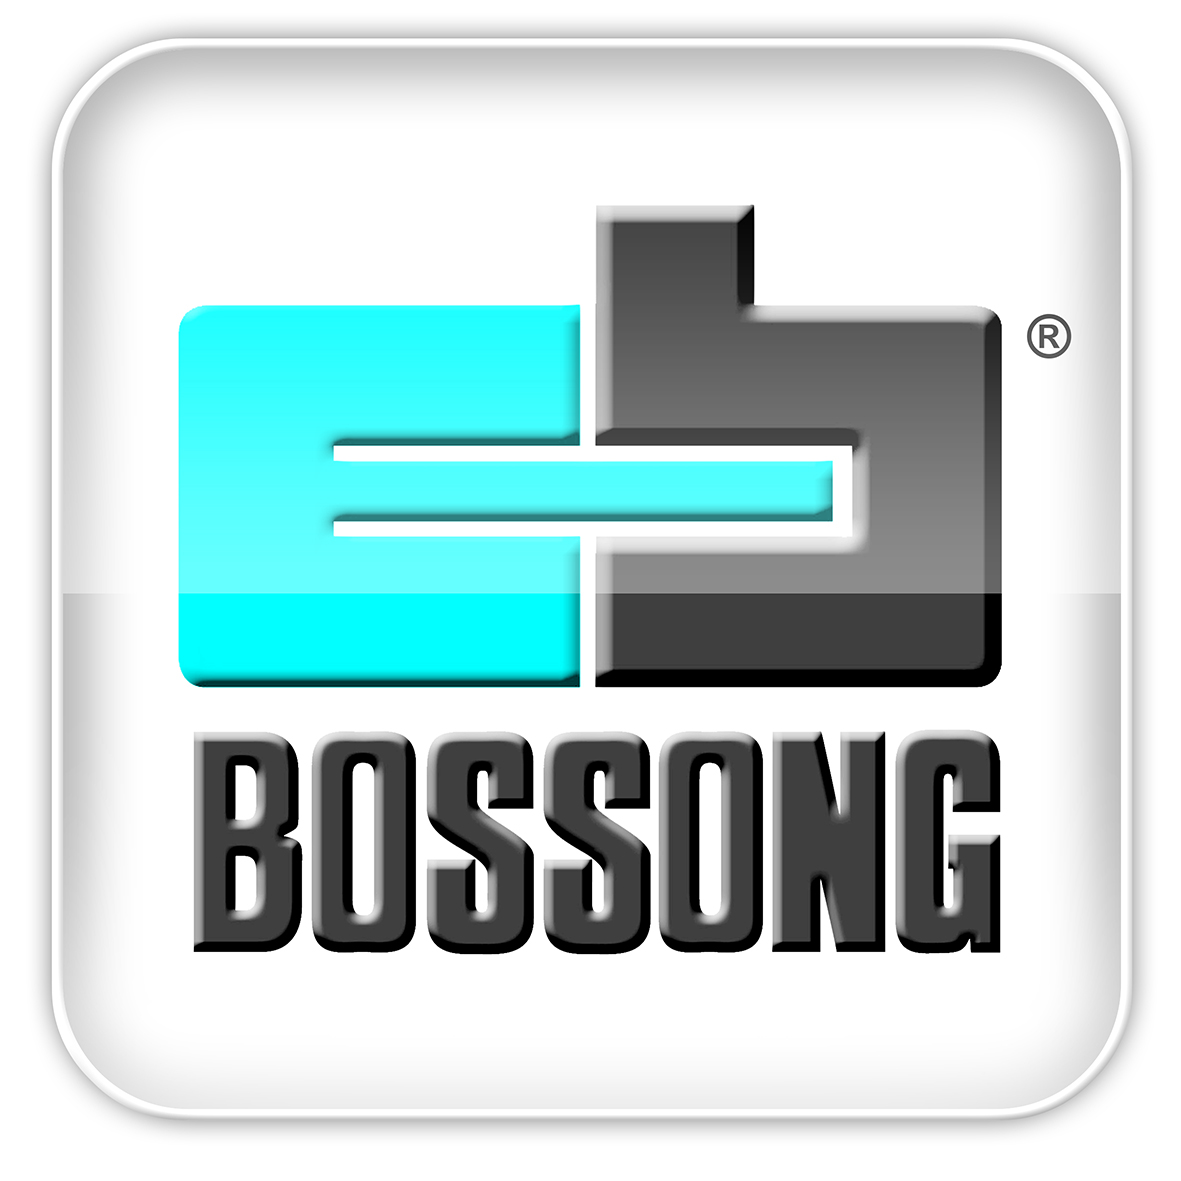 BOSSONG S.p.A.